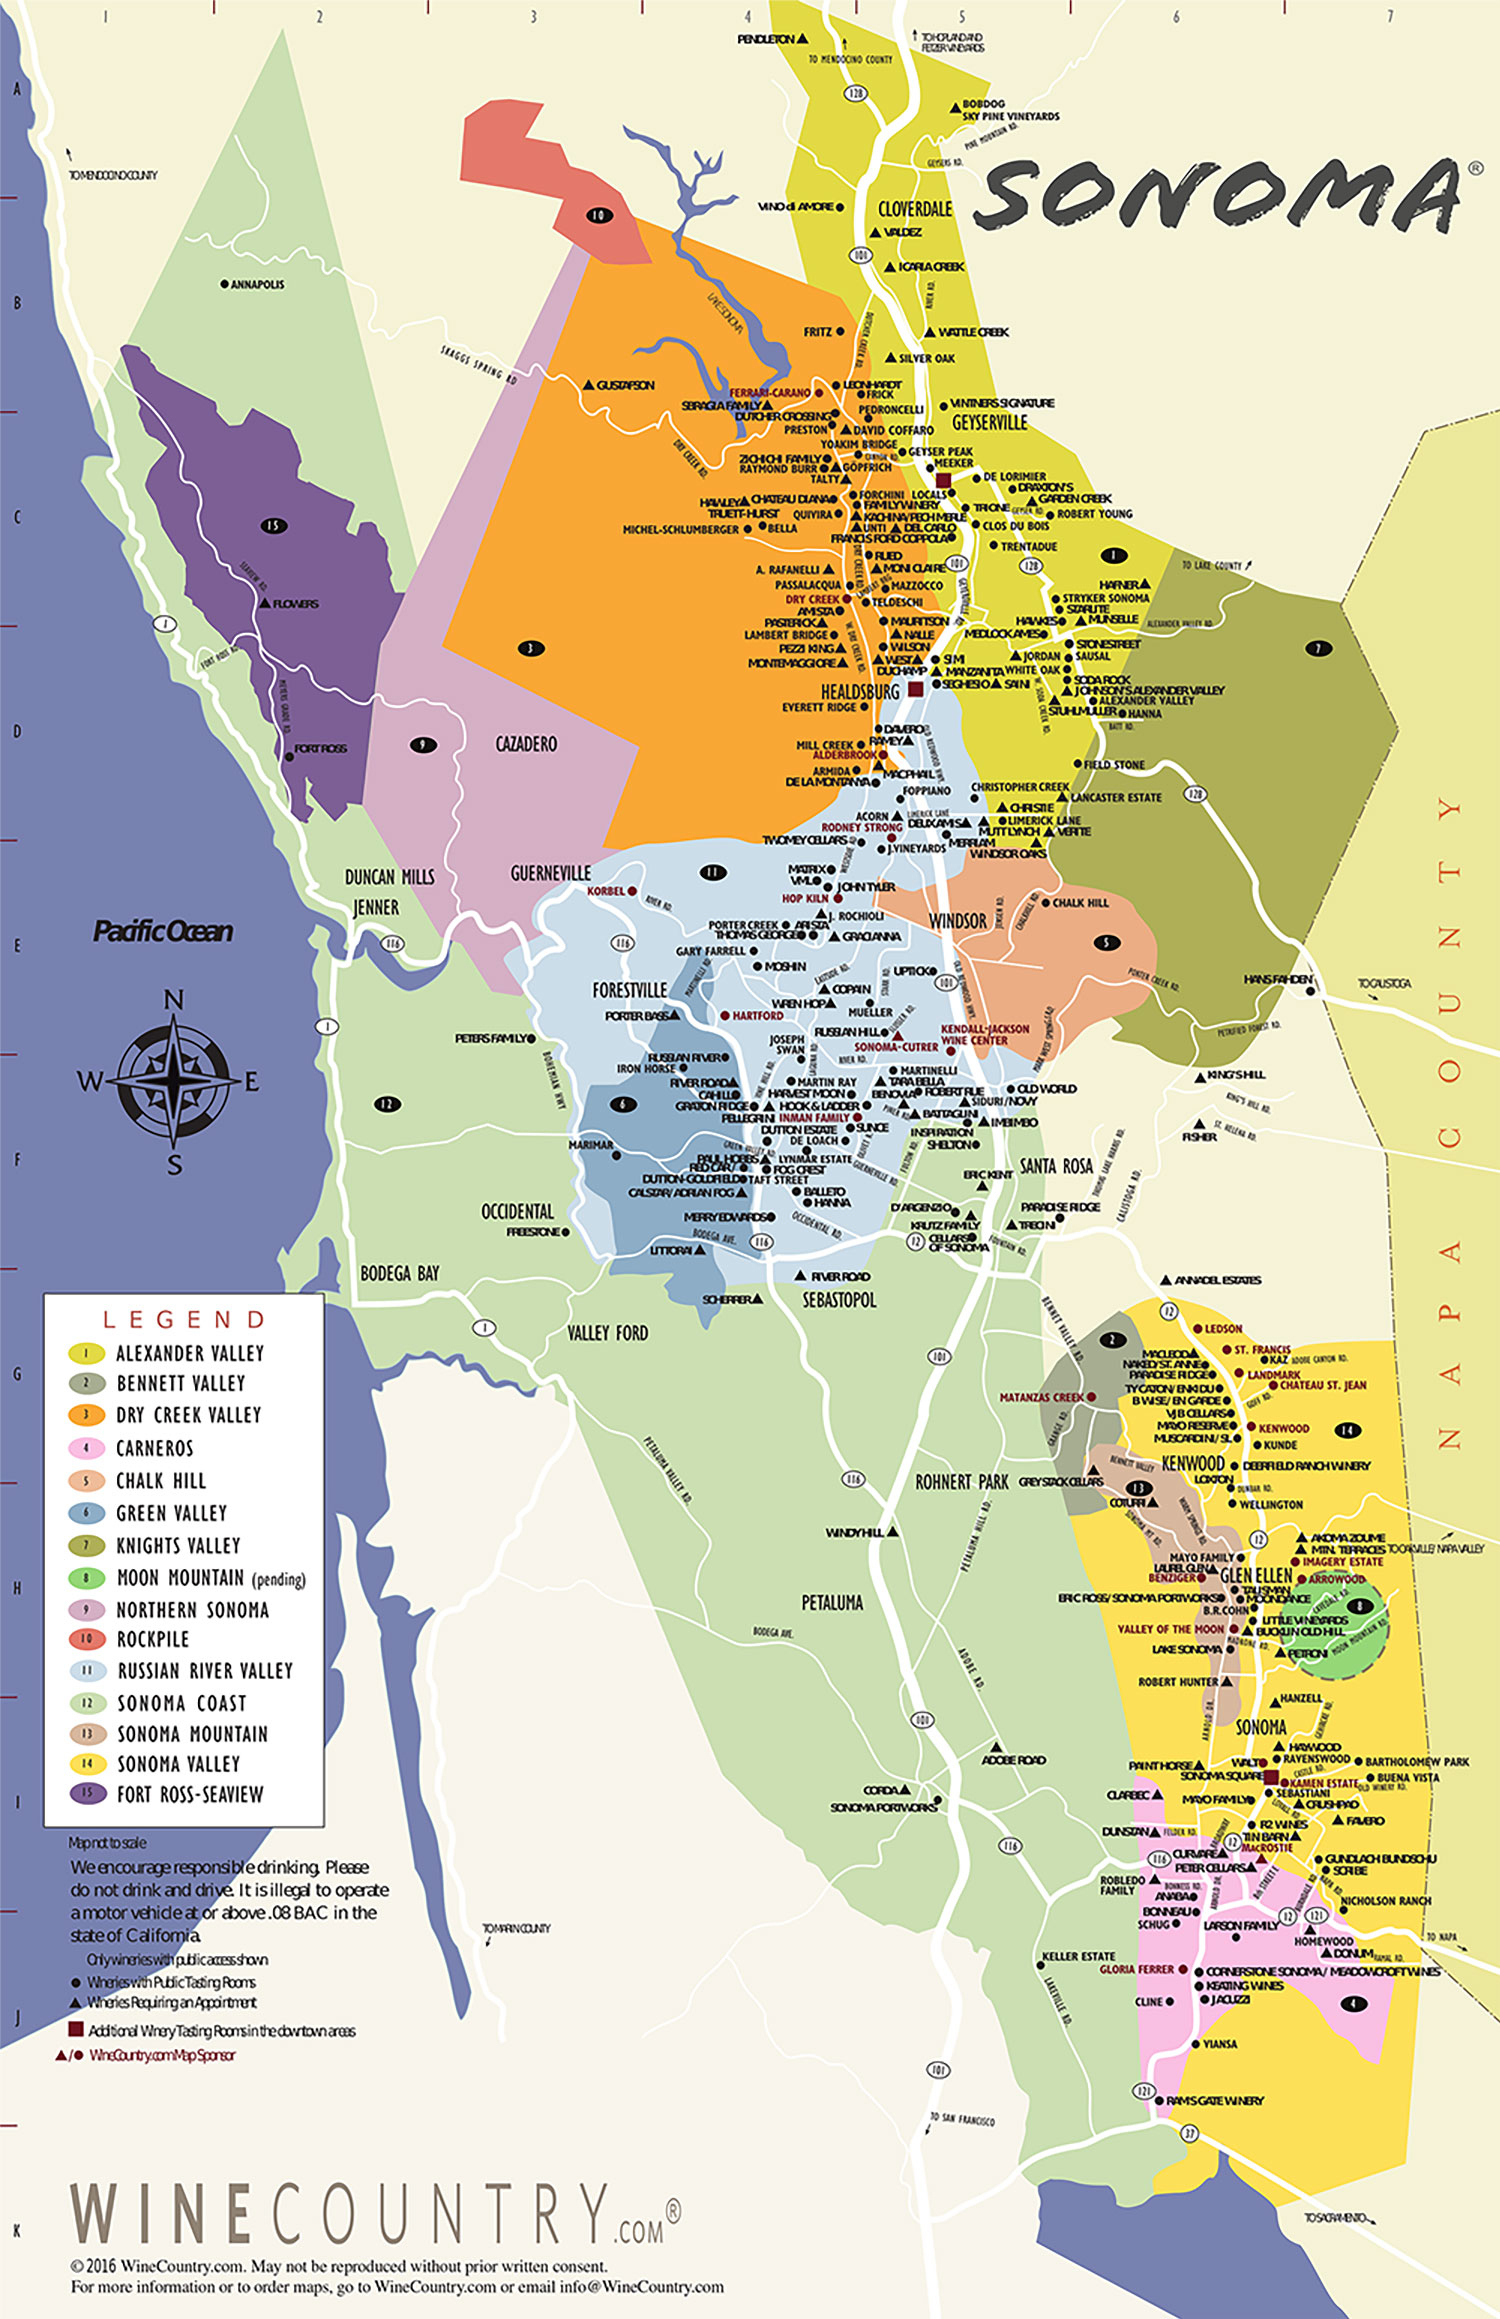 Sonoma County Wine Country Maps - Sonoma - Map Of Northern California Wine Regions